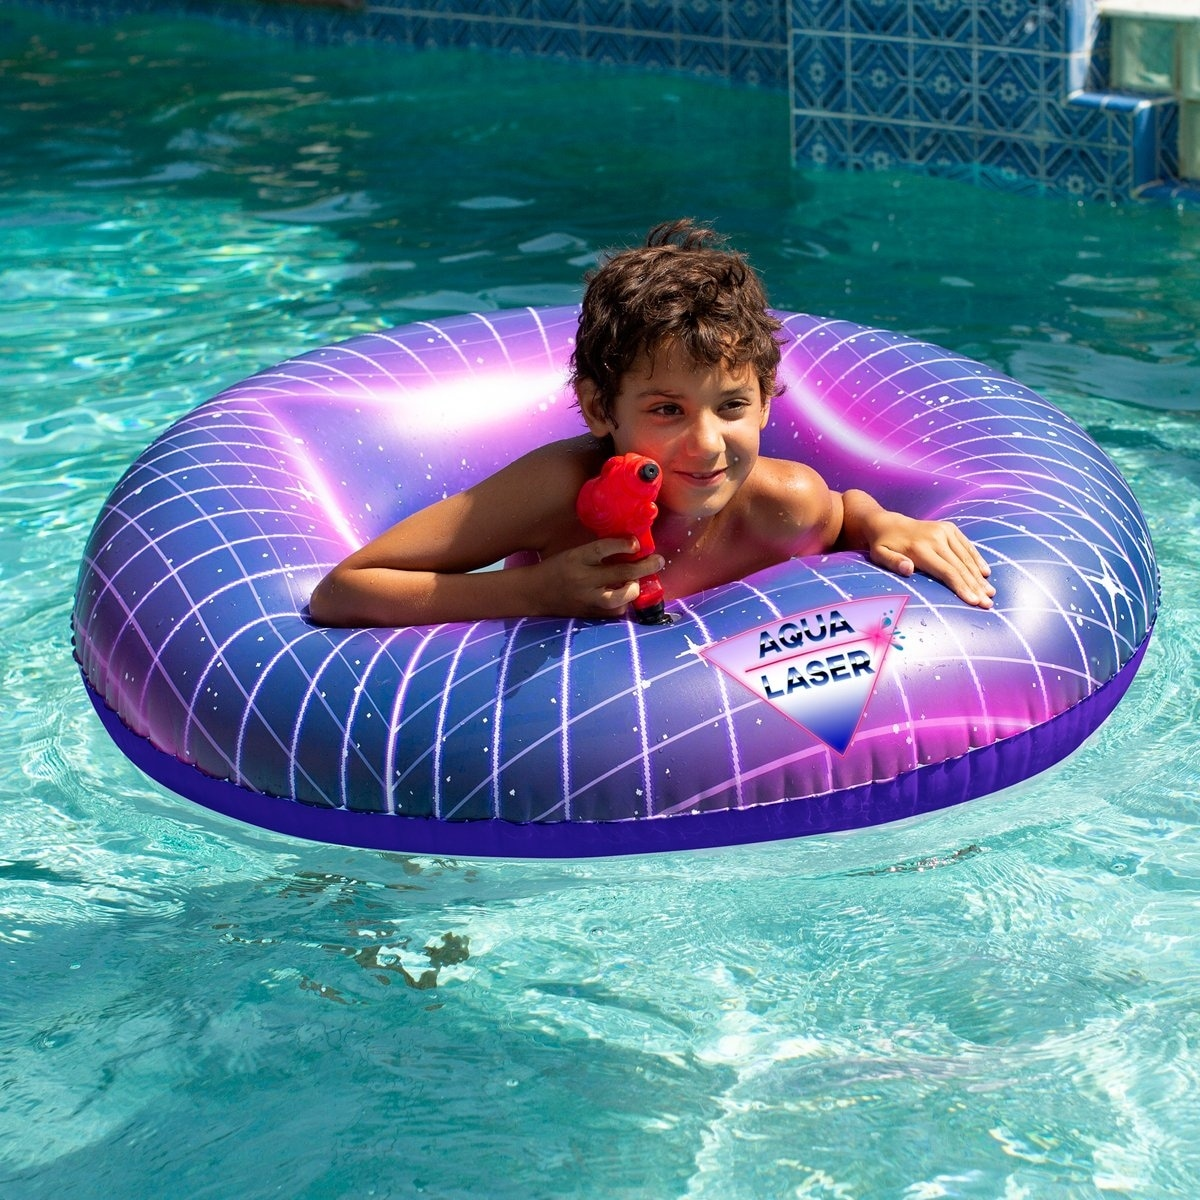 Aqua Laser Pool Tube Gun With Sound Effects Overstock 31568139